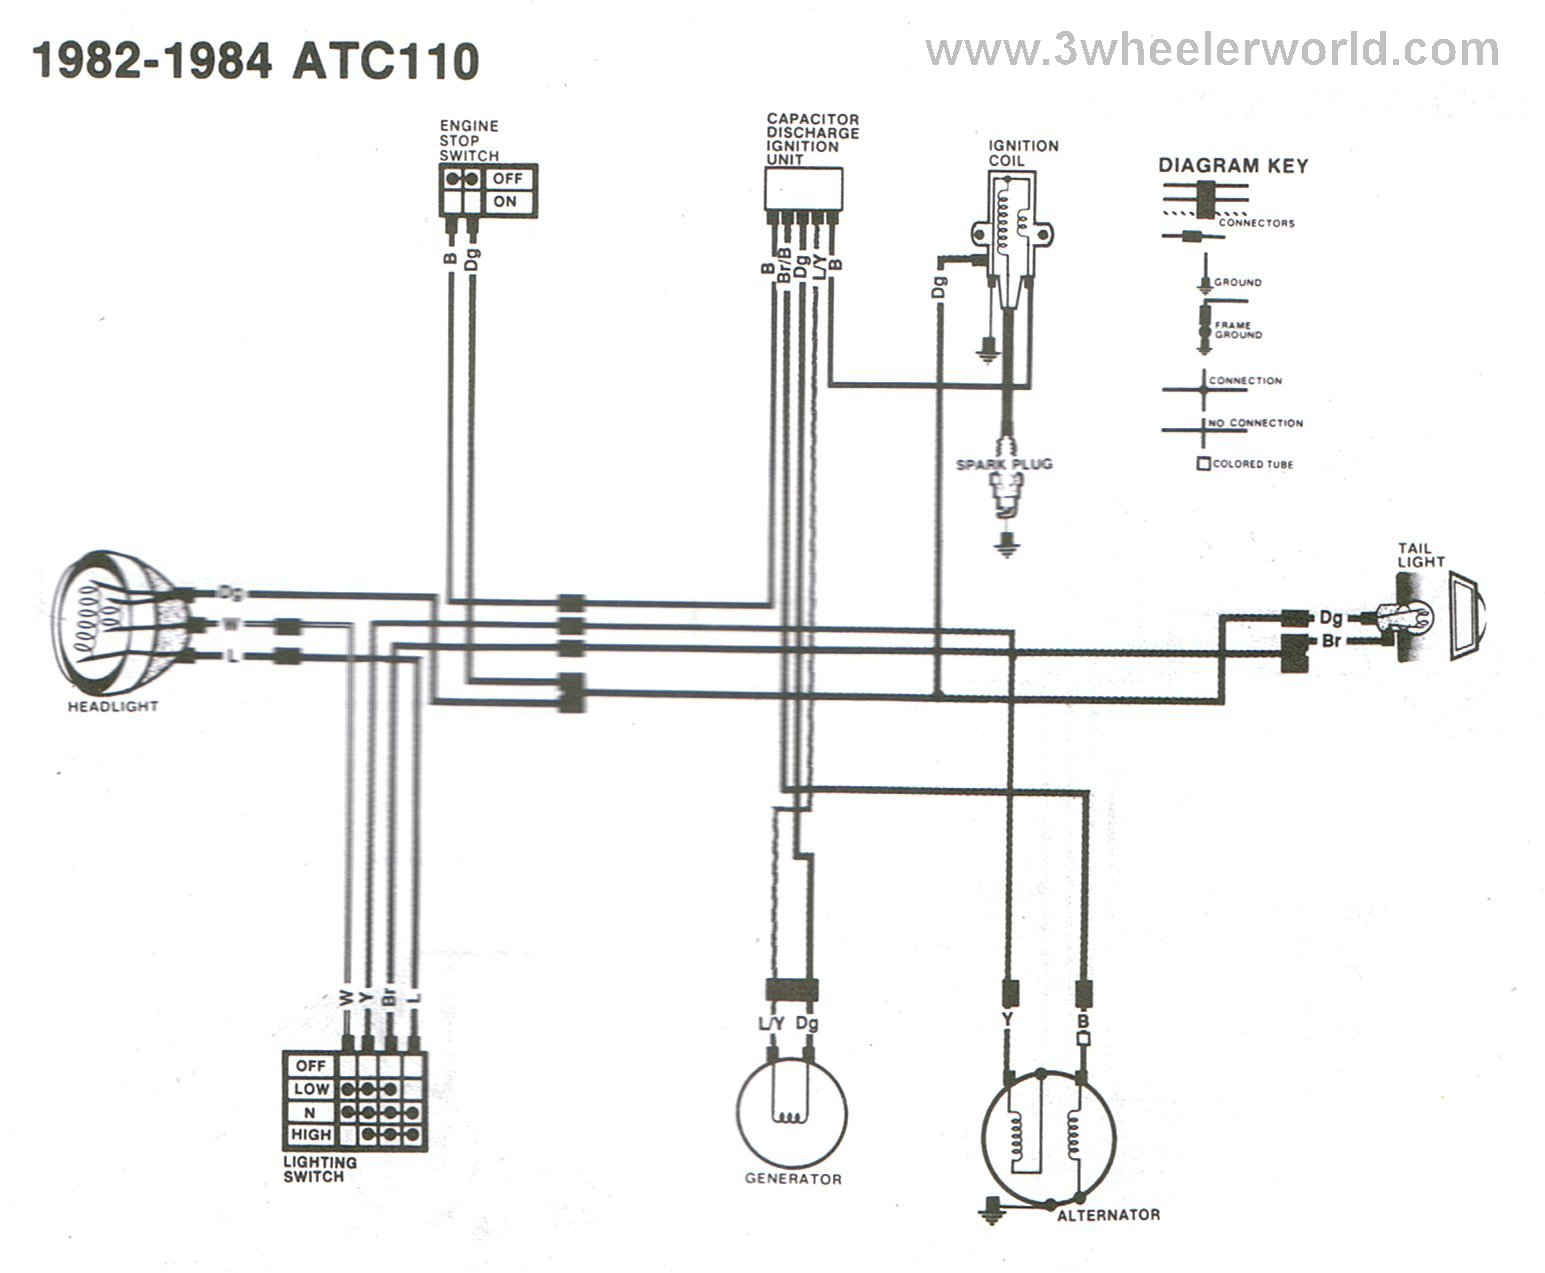 1977 ct70 wiring diagram guitar diagrams 1 humbucker single coil cb350 ignition 11 stromoeko de library rh 38 boogweb nl honda headlight